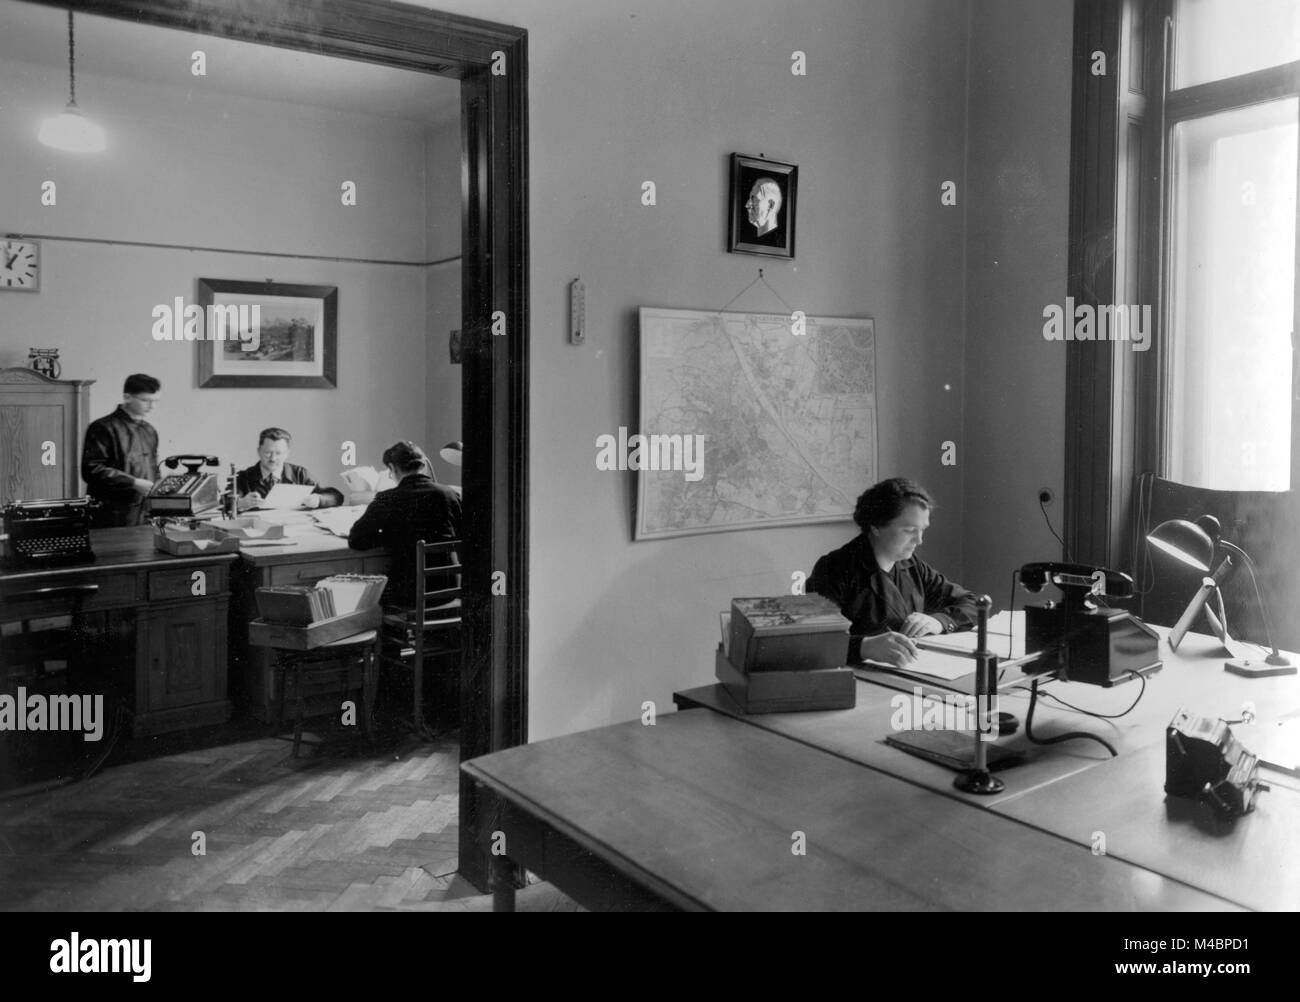 office furniture women ikea officemen and women at the desk1940sexact location unknowngermany unknown